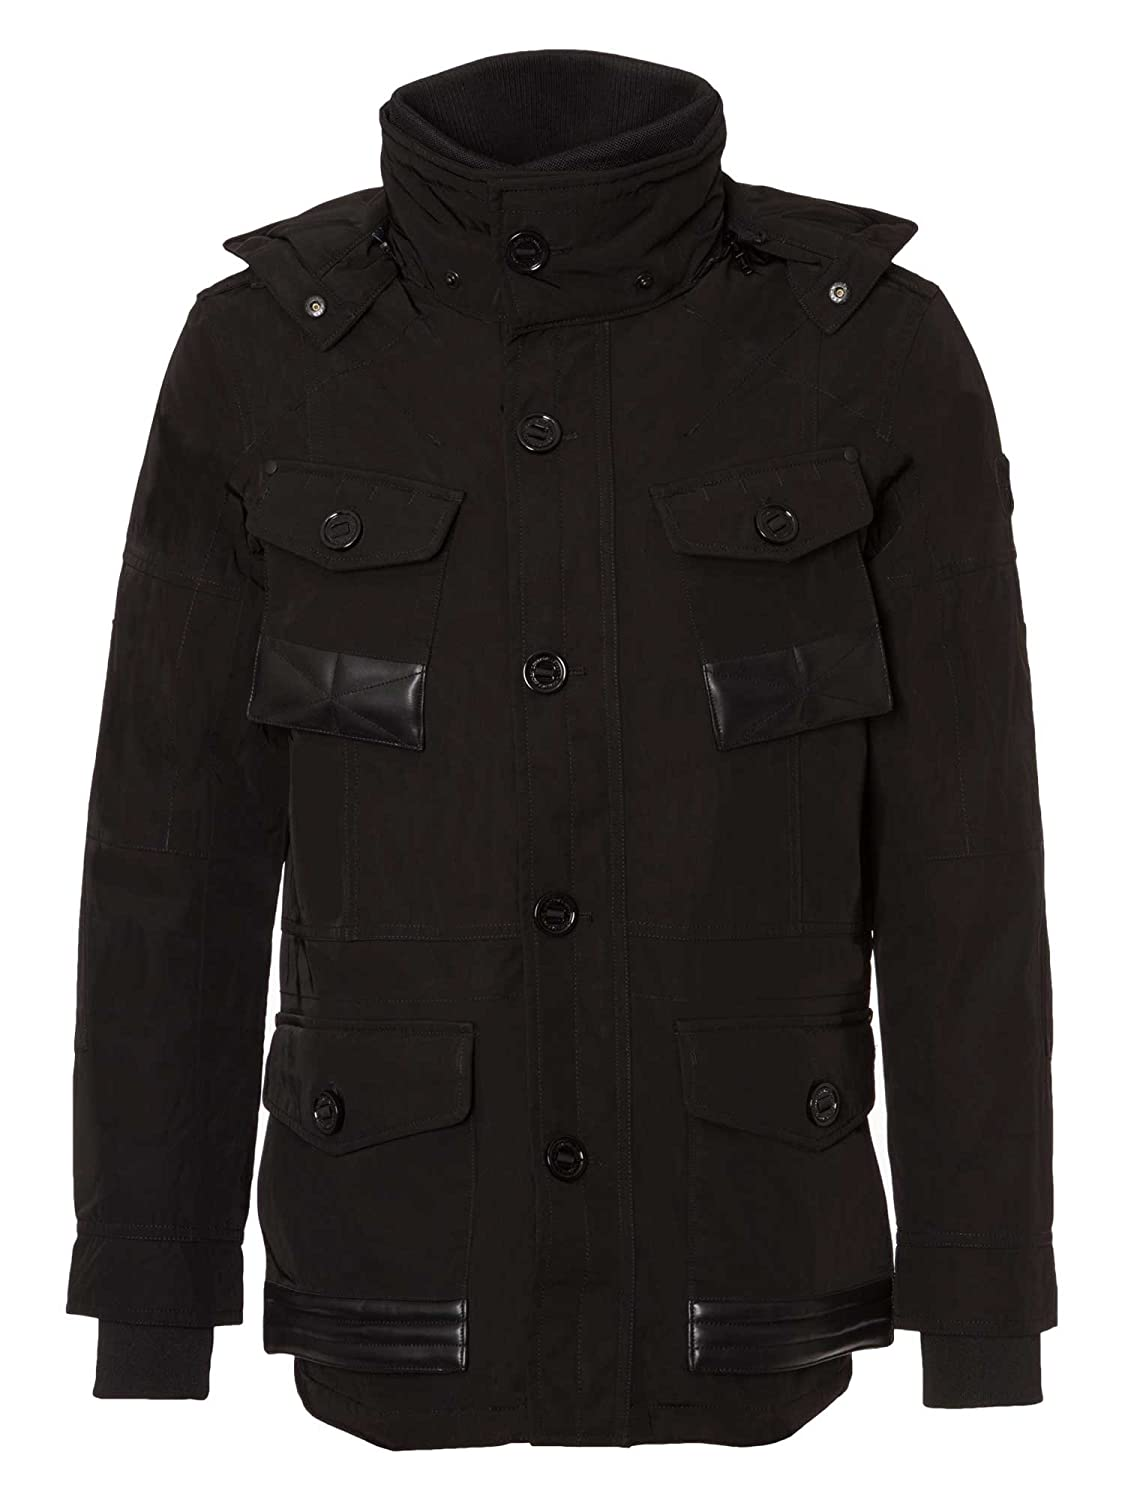 LIGHTS OF LONDON Men functional jacket windproof and breathable